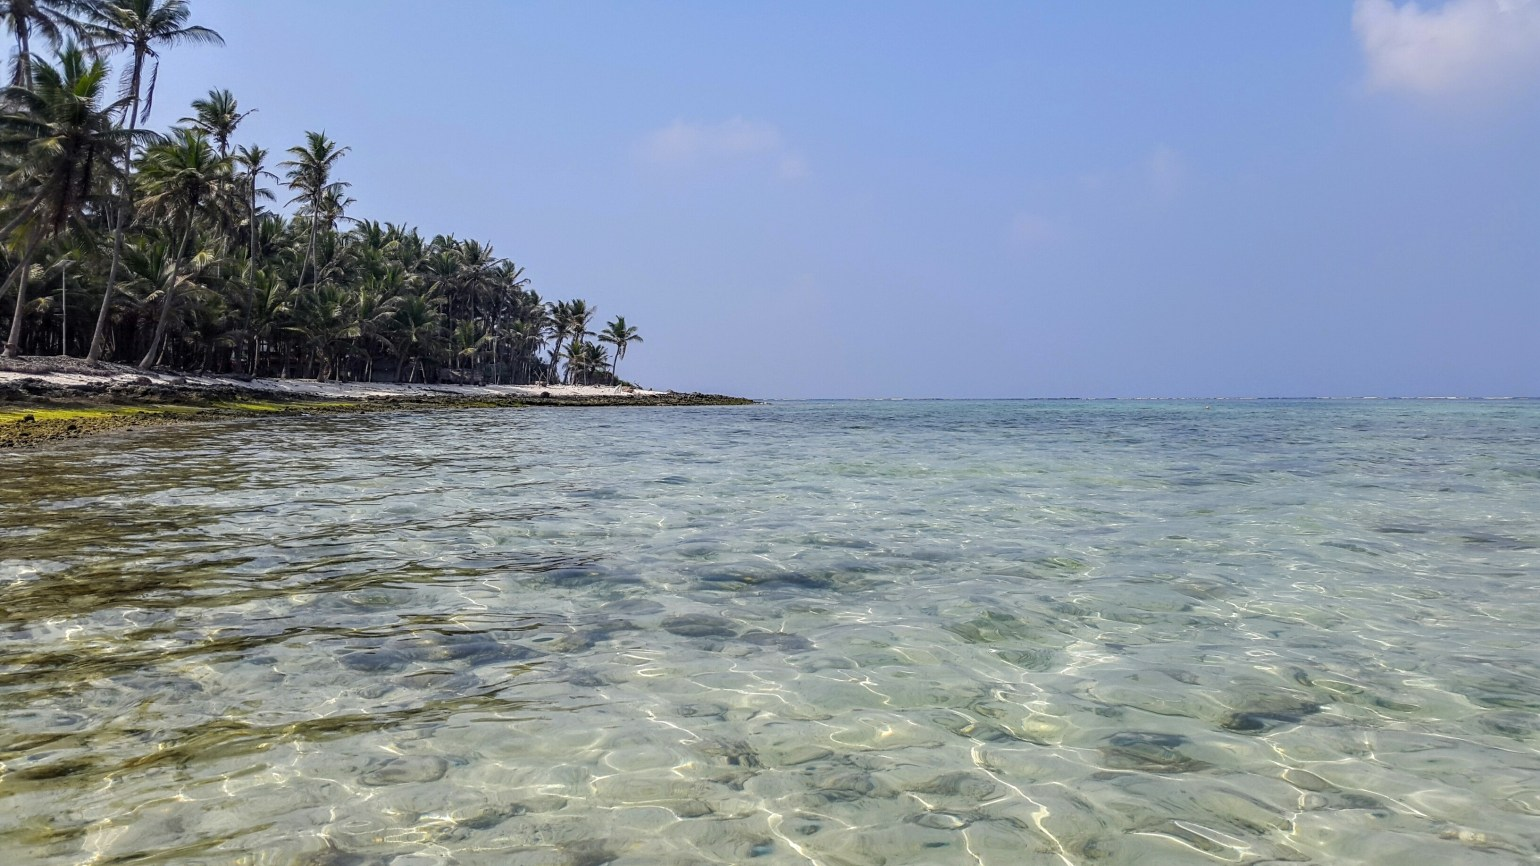 Beach on 'chicken neck', Kavaratti island, Lakshadweep, India